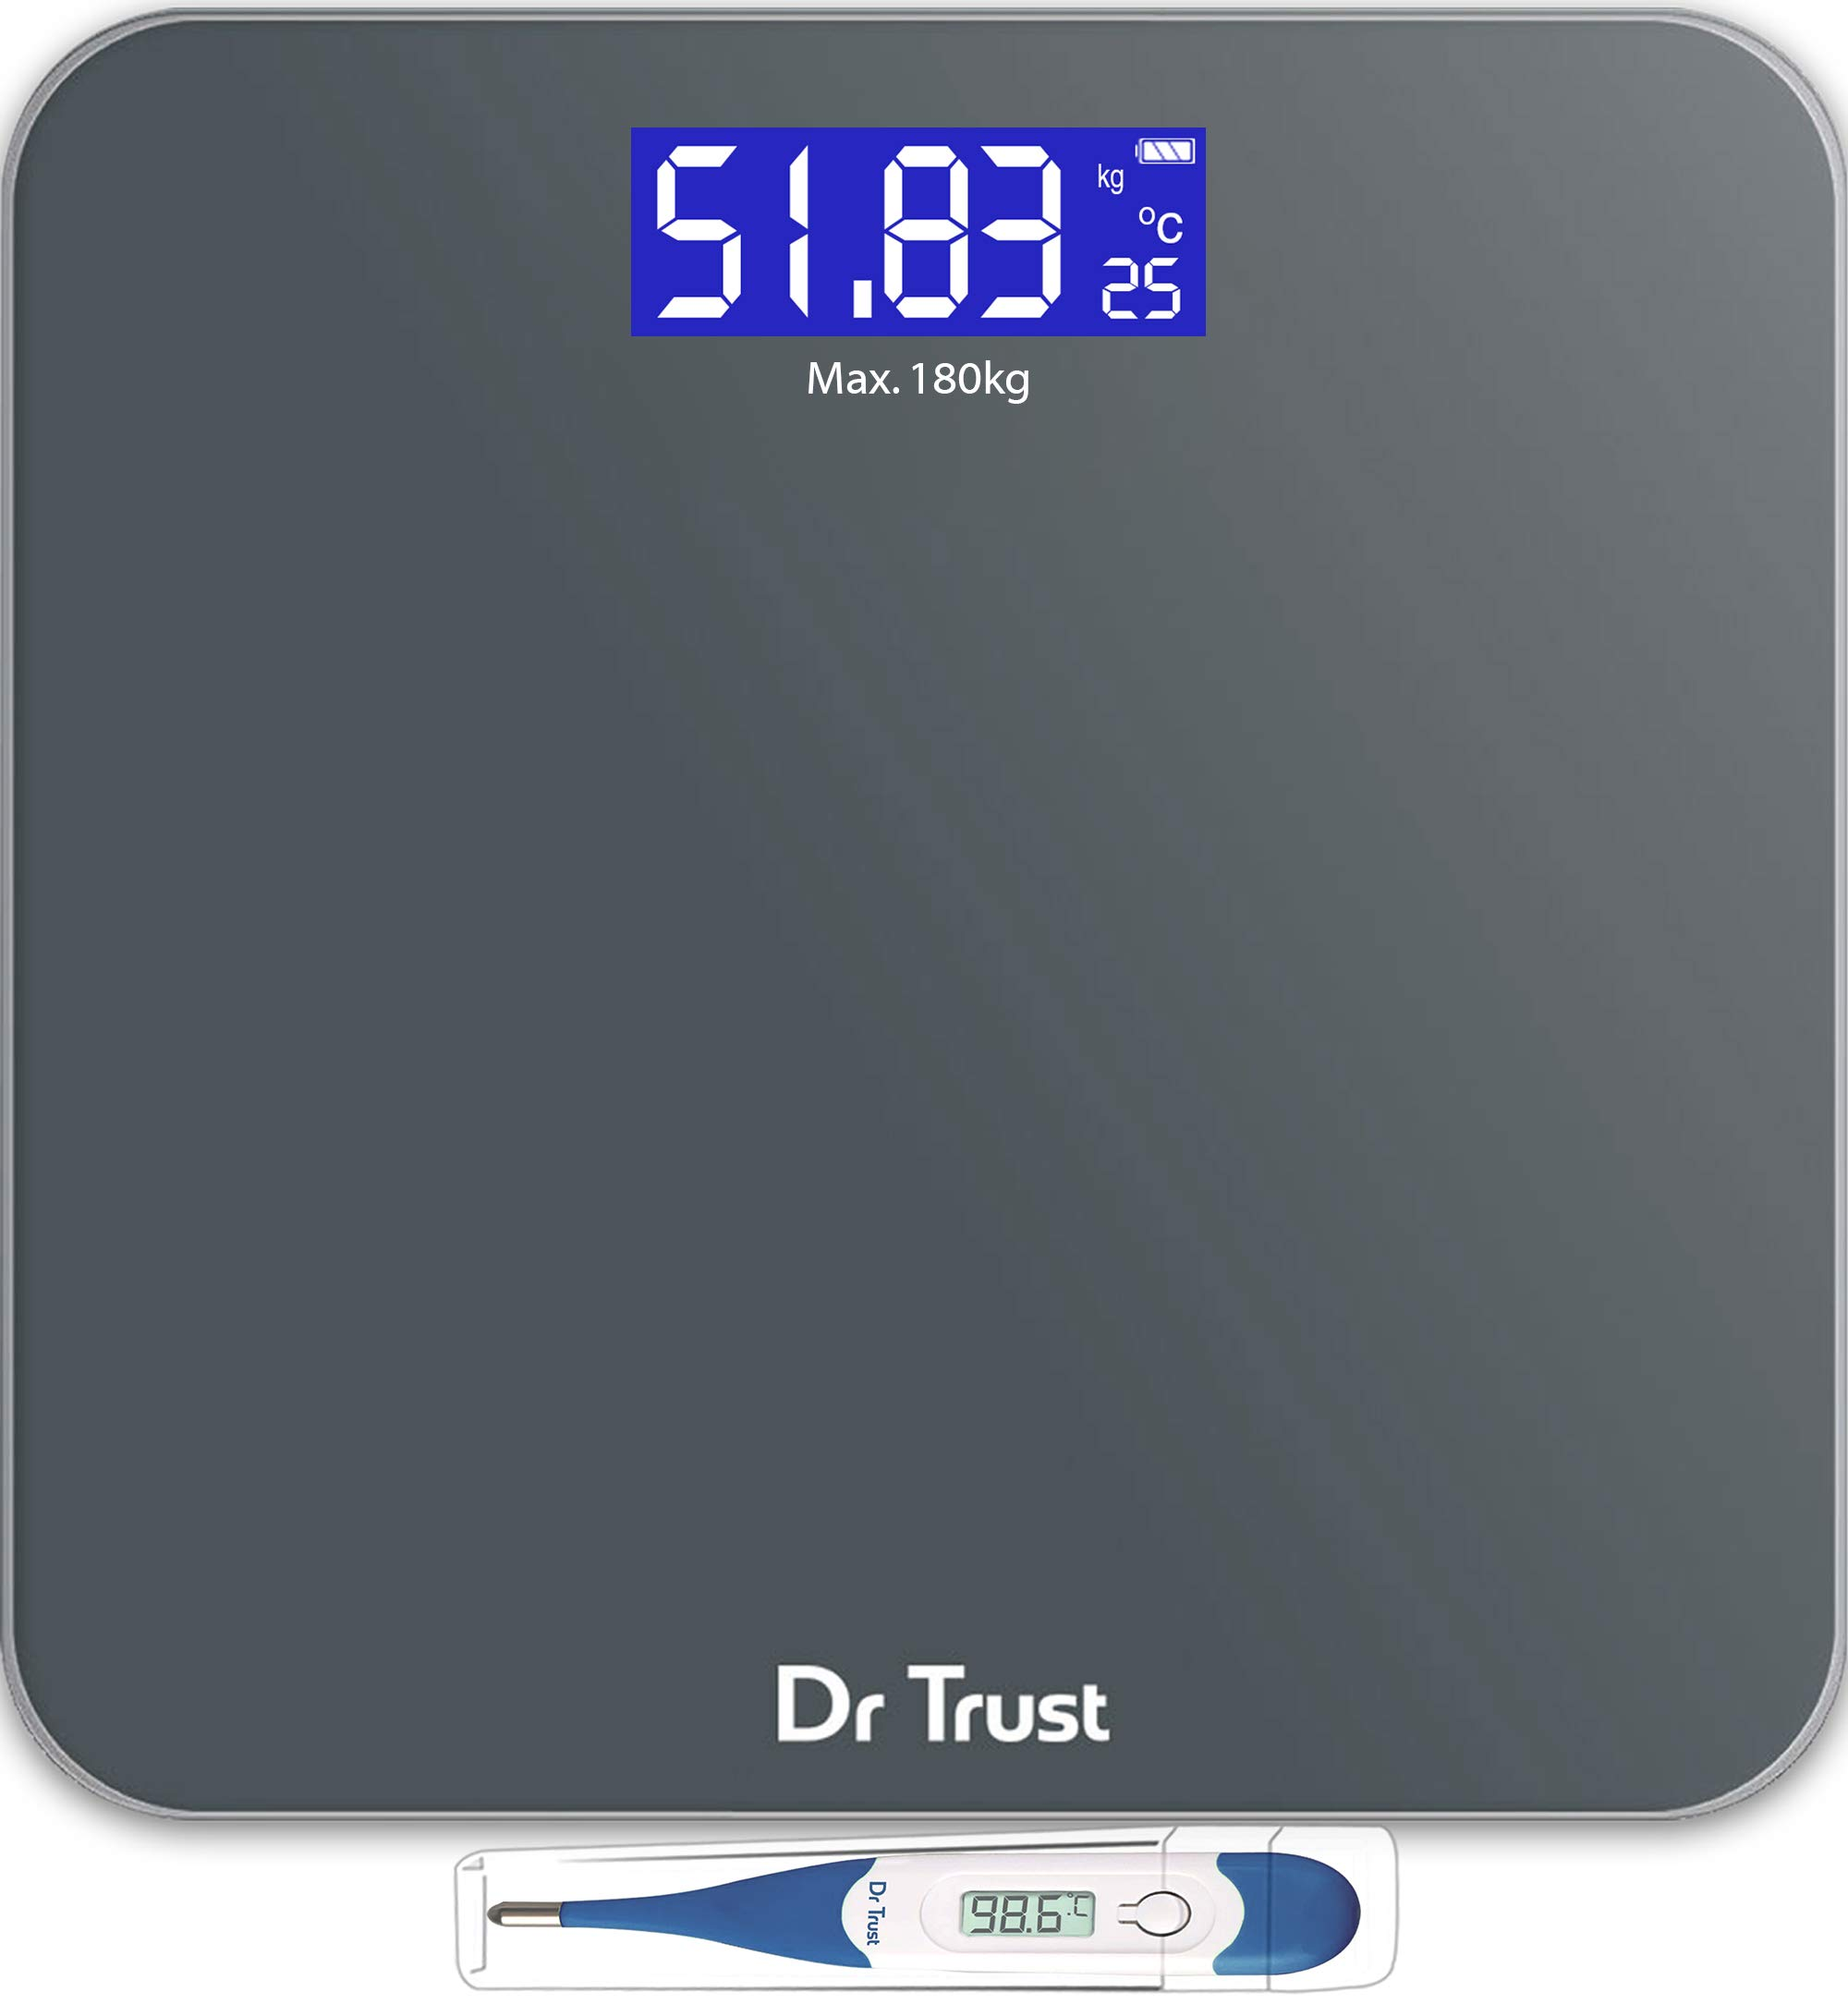 Dr Trust (USA) Electronic Platinum Rechargeable Digital Personal Weighing Scale for Human Body with Temperature Display product image